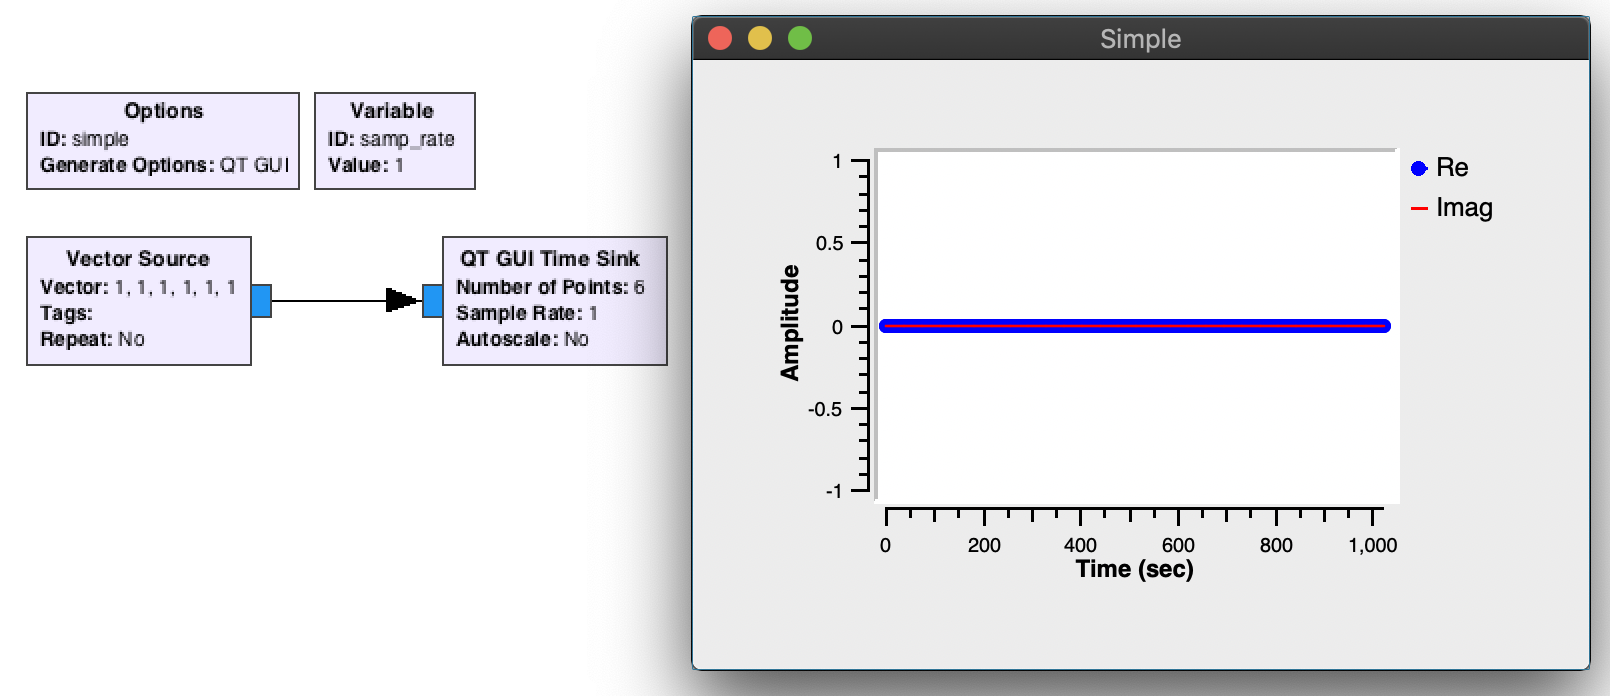 3 7/3 8 - QT GUI Time Sink does not plot correctly when